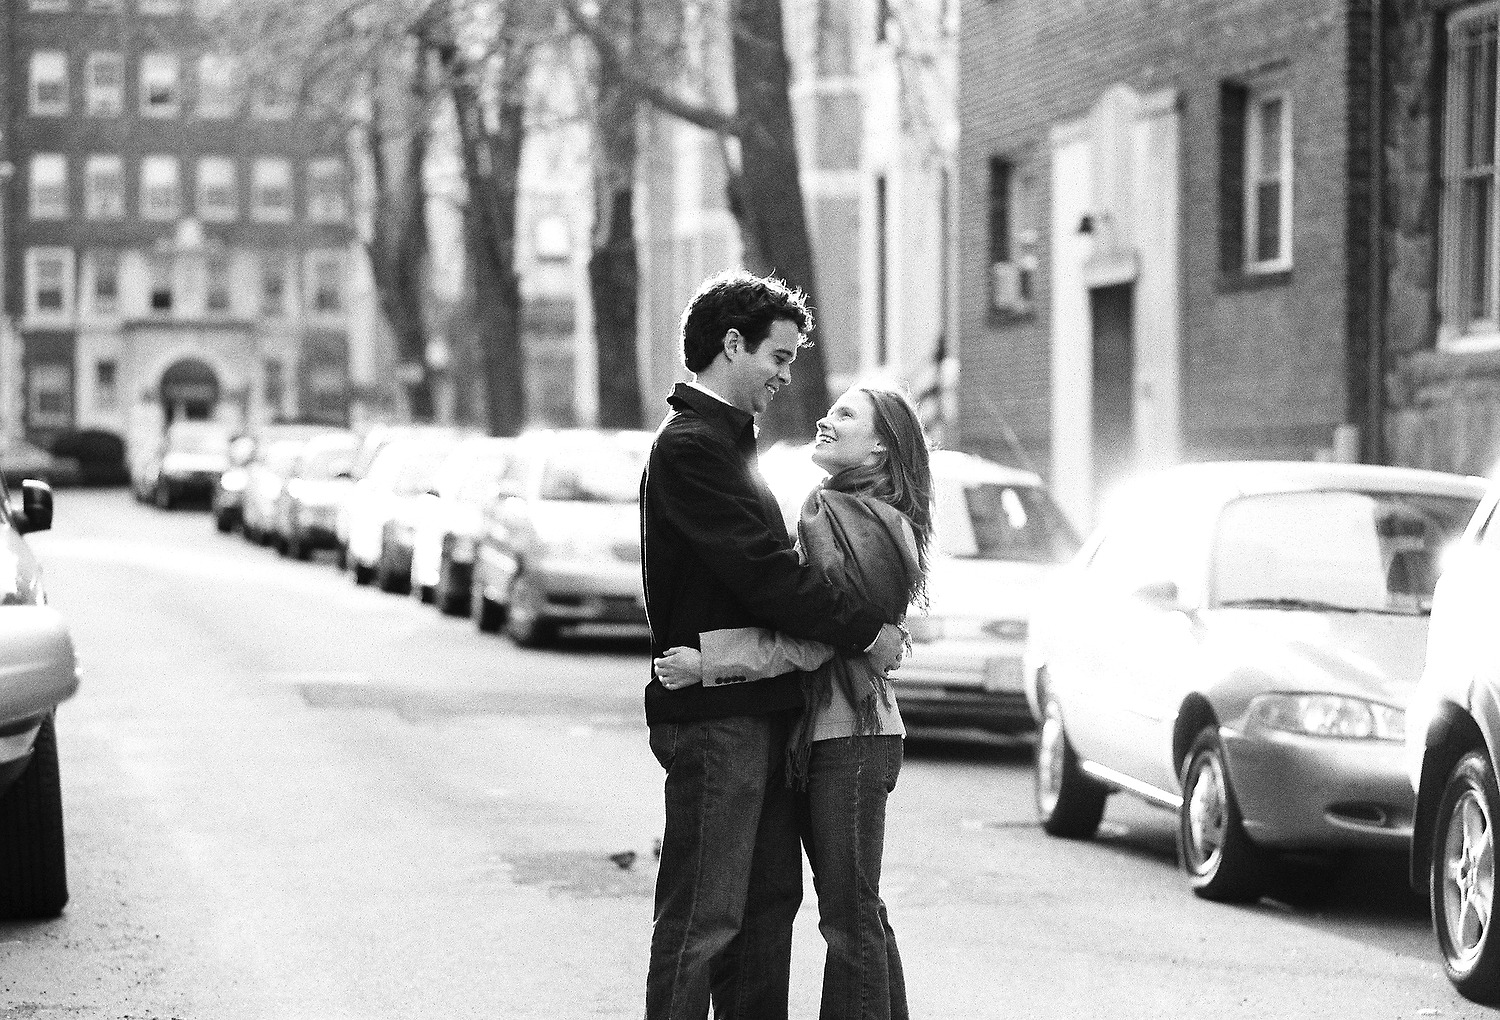 couple looking at each other city street in black and white